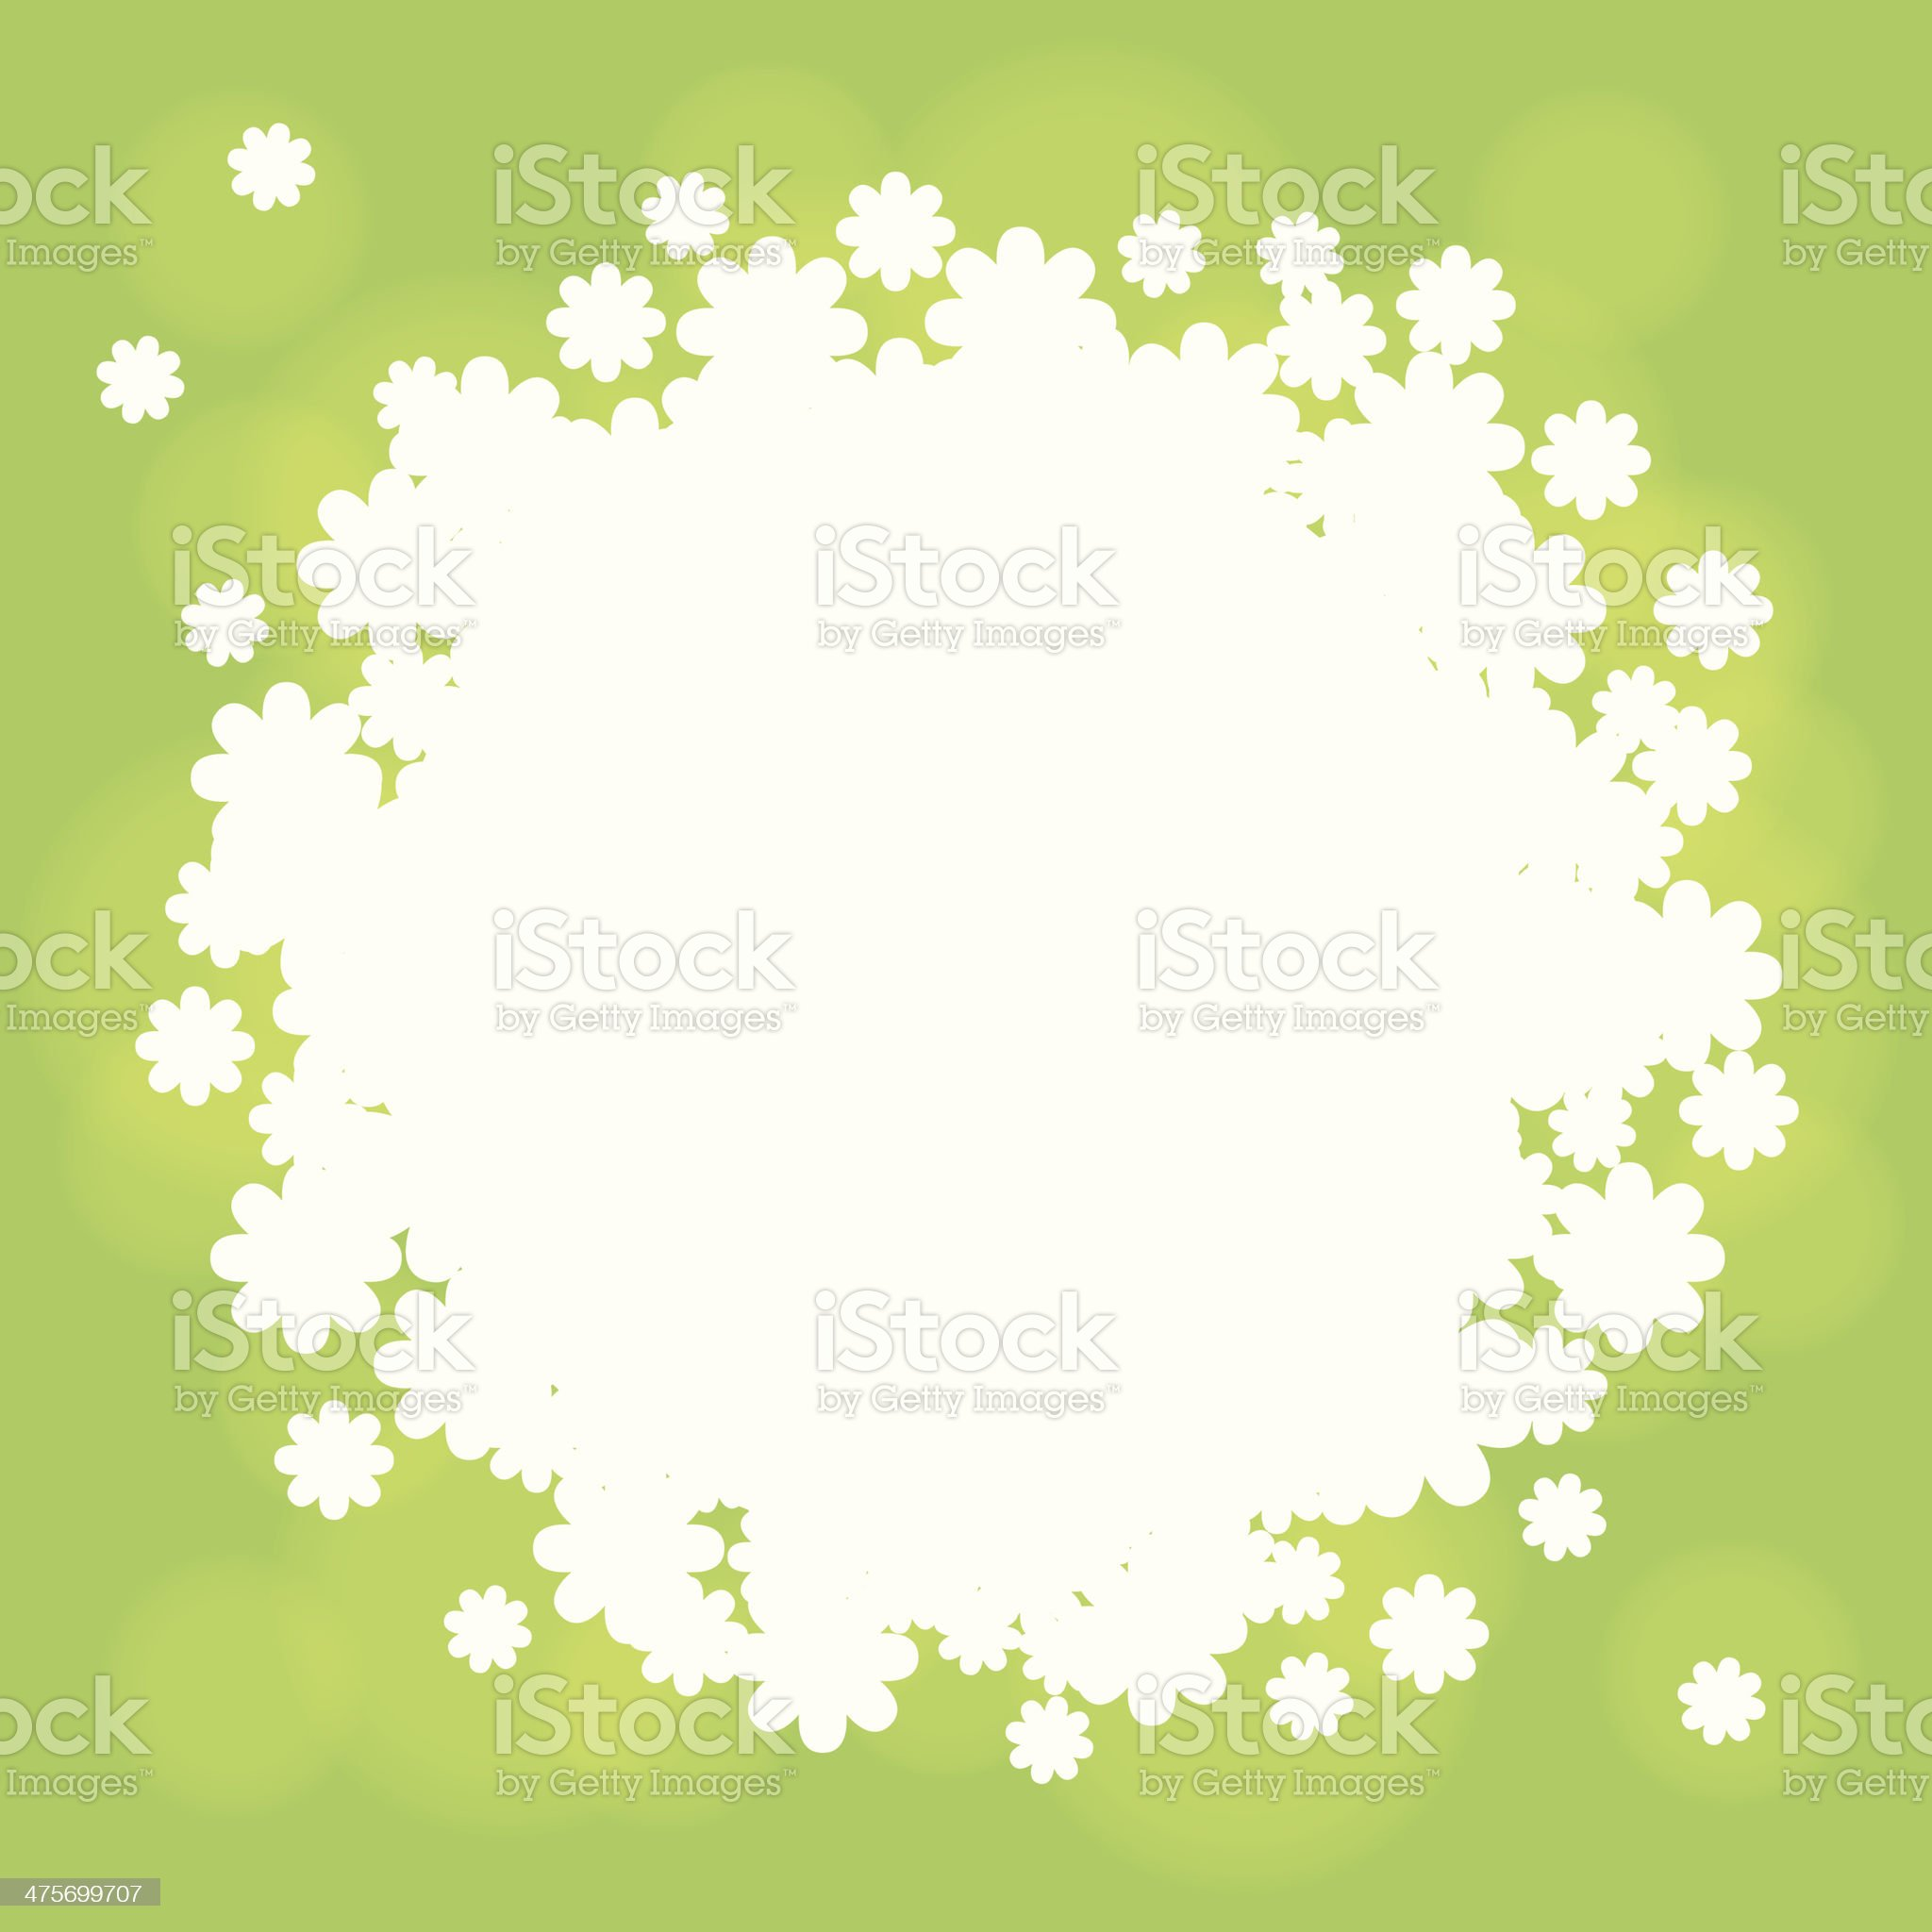 Green background with white flowers royalty-free stock vector art